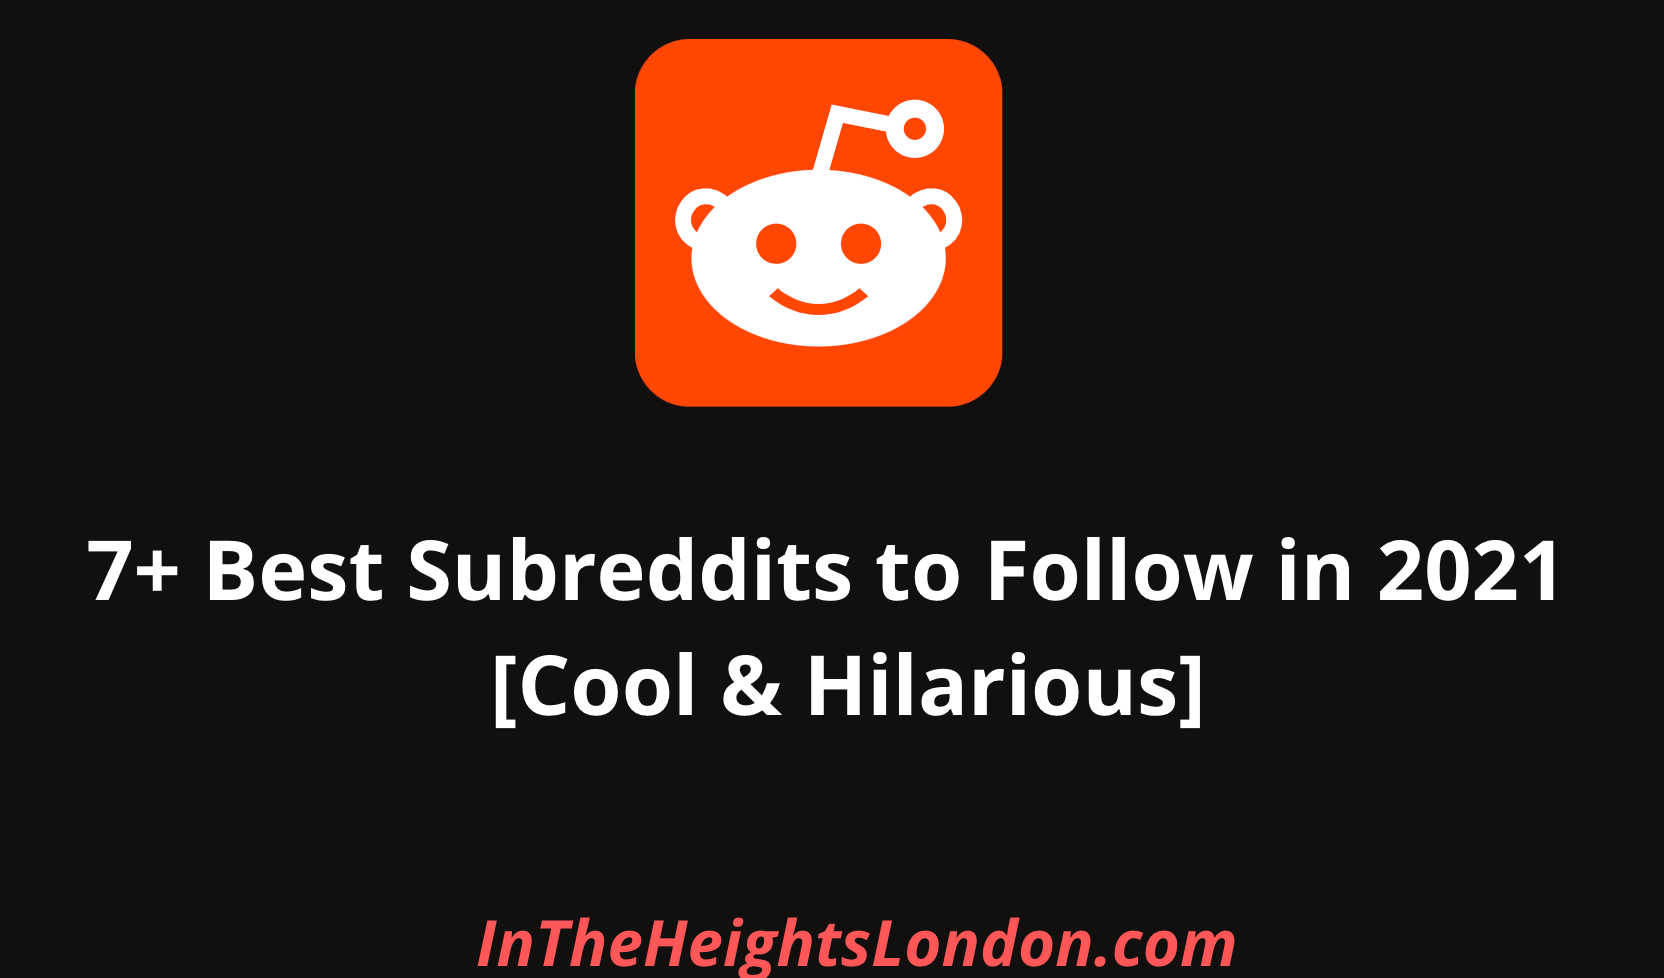 Best Subreddits to Follow